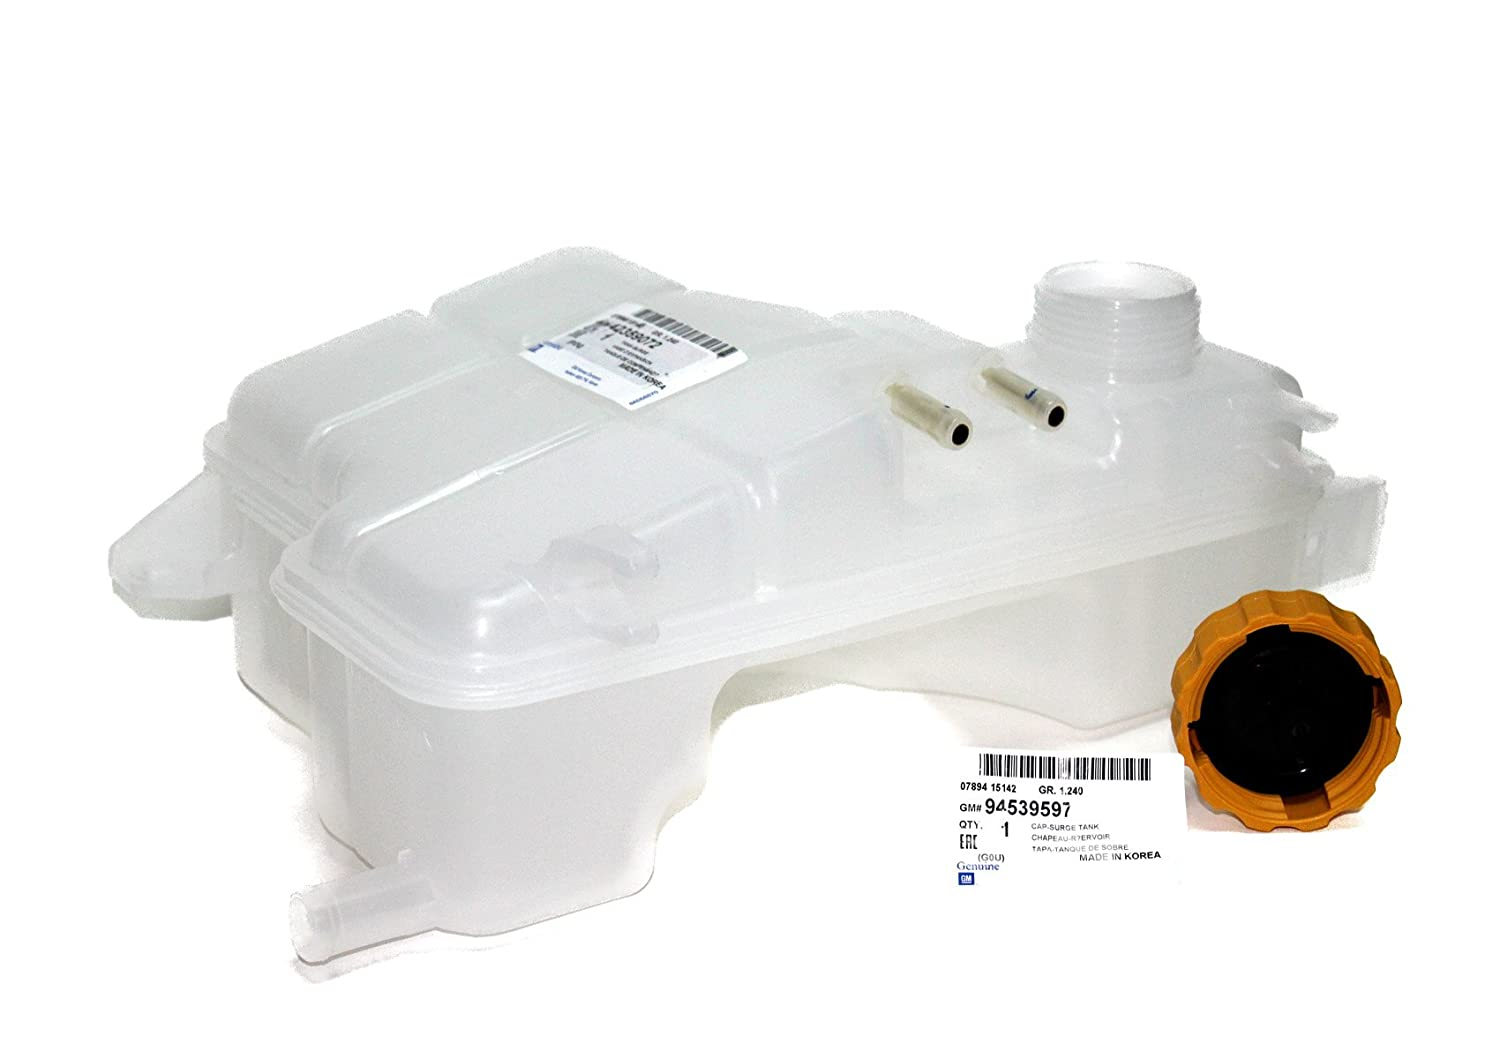 Coolant Tank Surge Includes Tank Cap for Chevy Chevrolet Epica Part 94539597 95215562 42359072